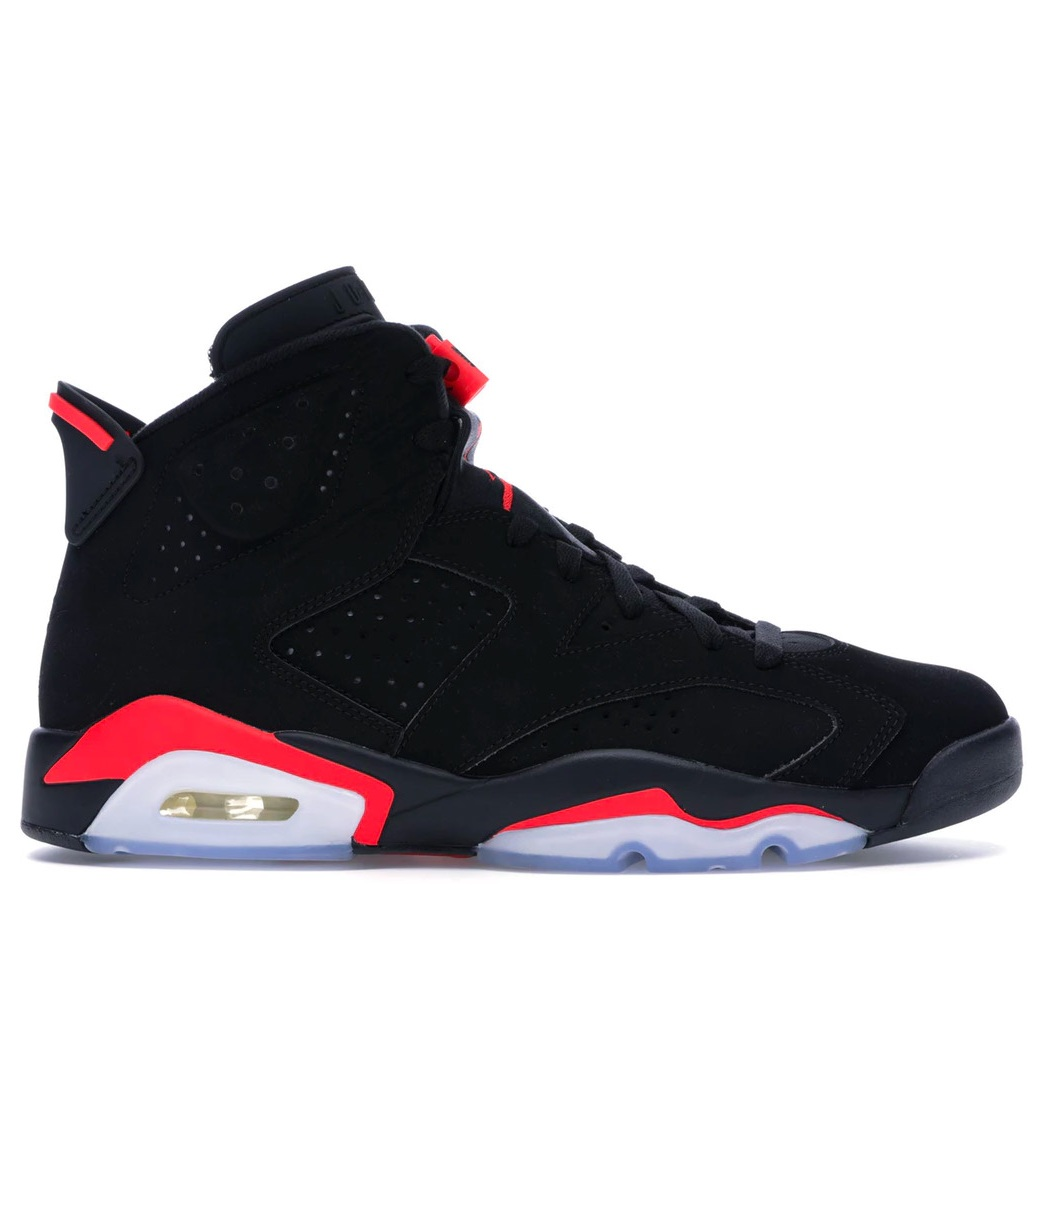 hot sale online f2f62 ff4c7 Restock  Air Jordan 6 Retro